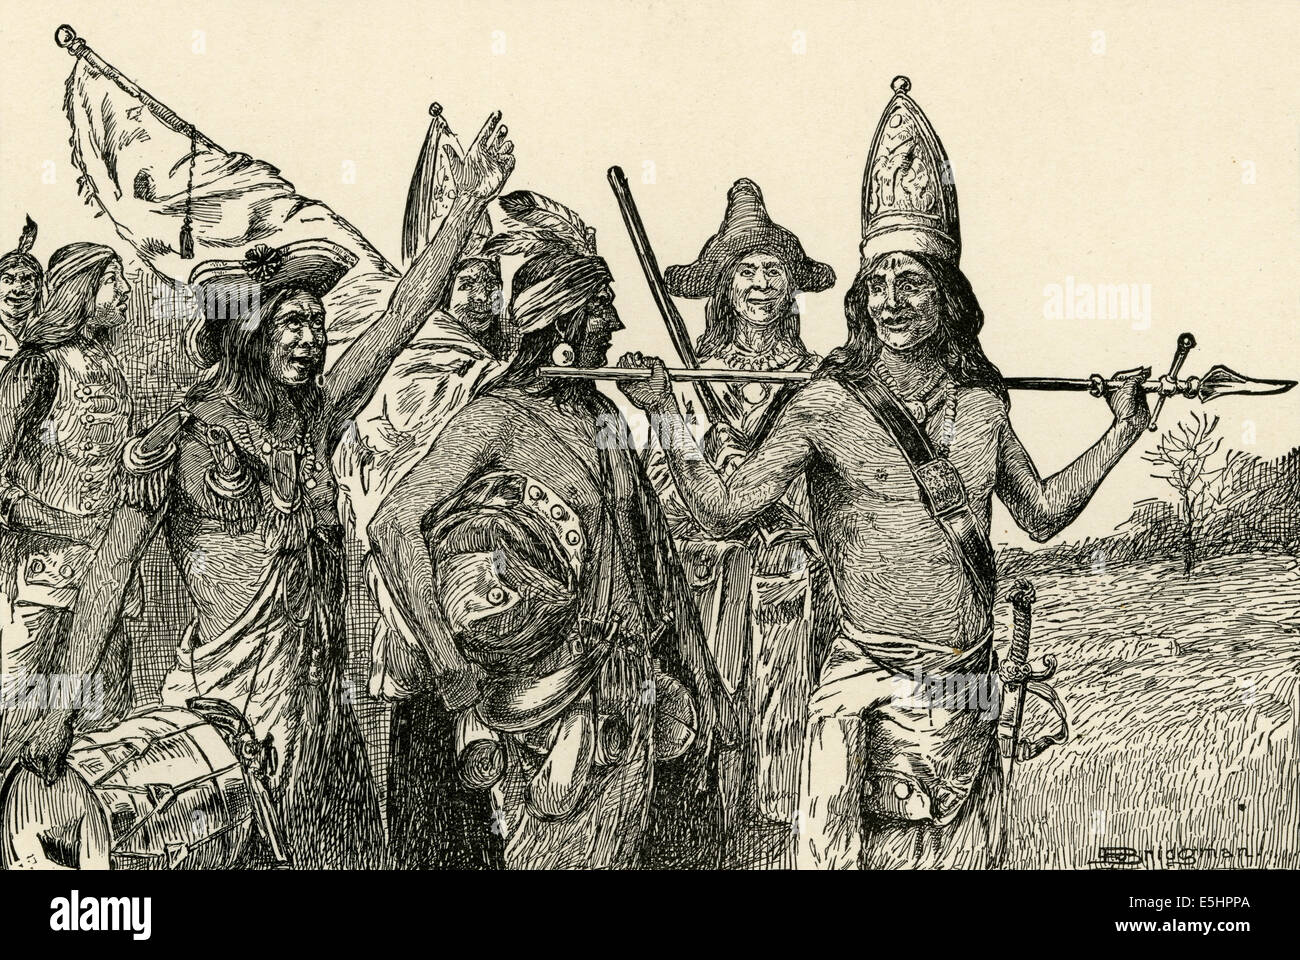 Antique 1895 engraving, 'The Indian Allies of the French Returning Home after Braddock's Defeat, Dressed - Stock Image